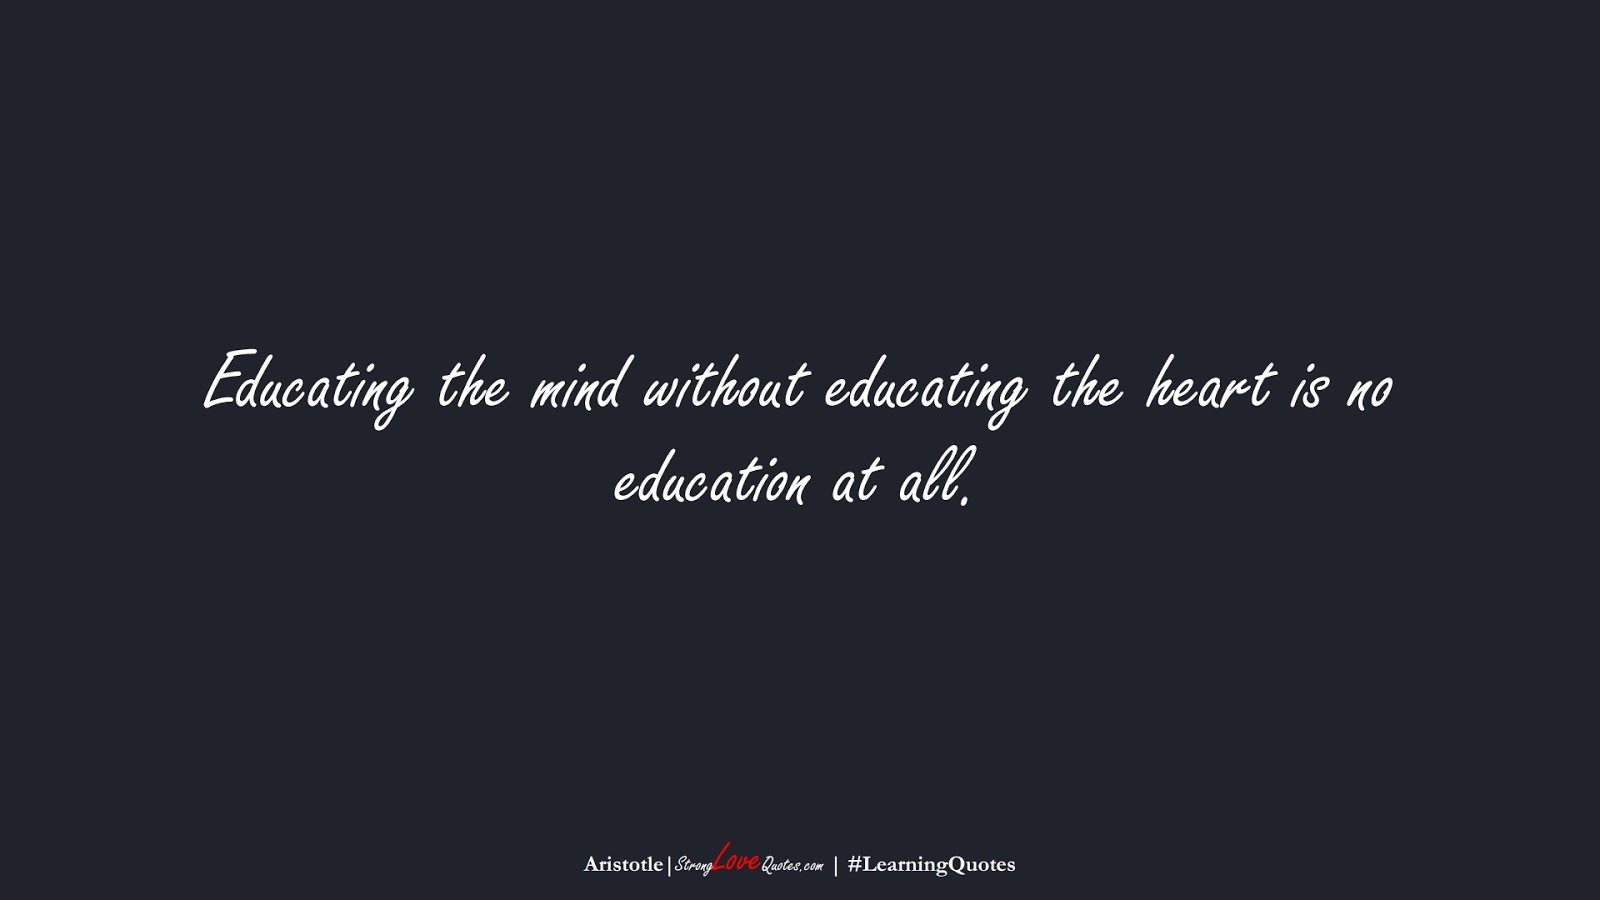 Educating the mind without educating the heart is no education at all. (Aristotle);  #LearningQuotes